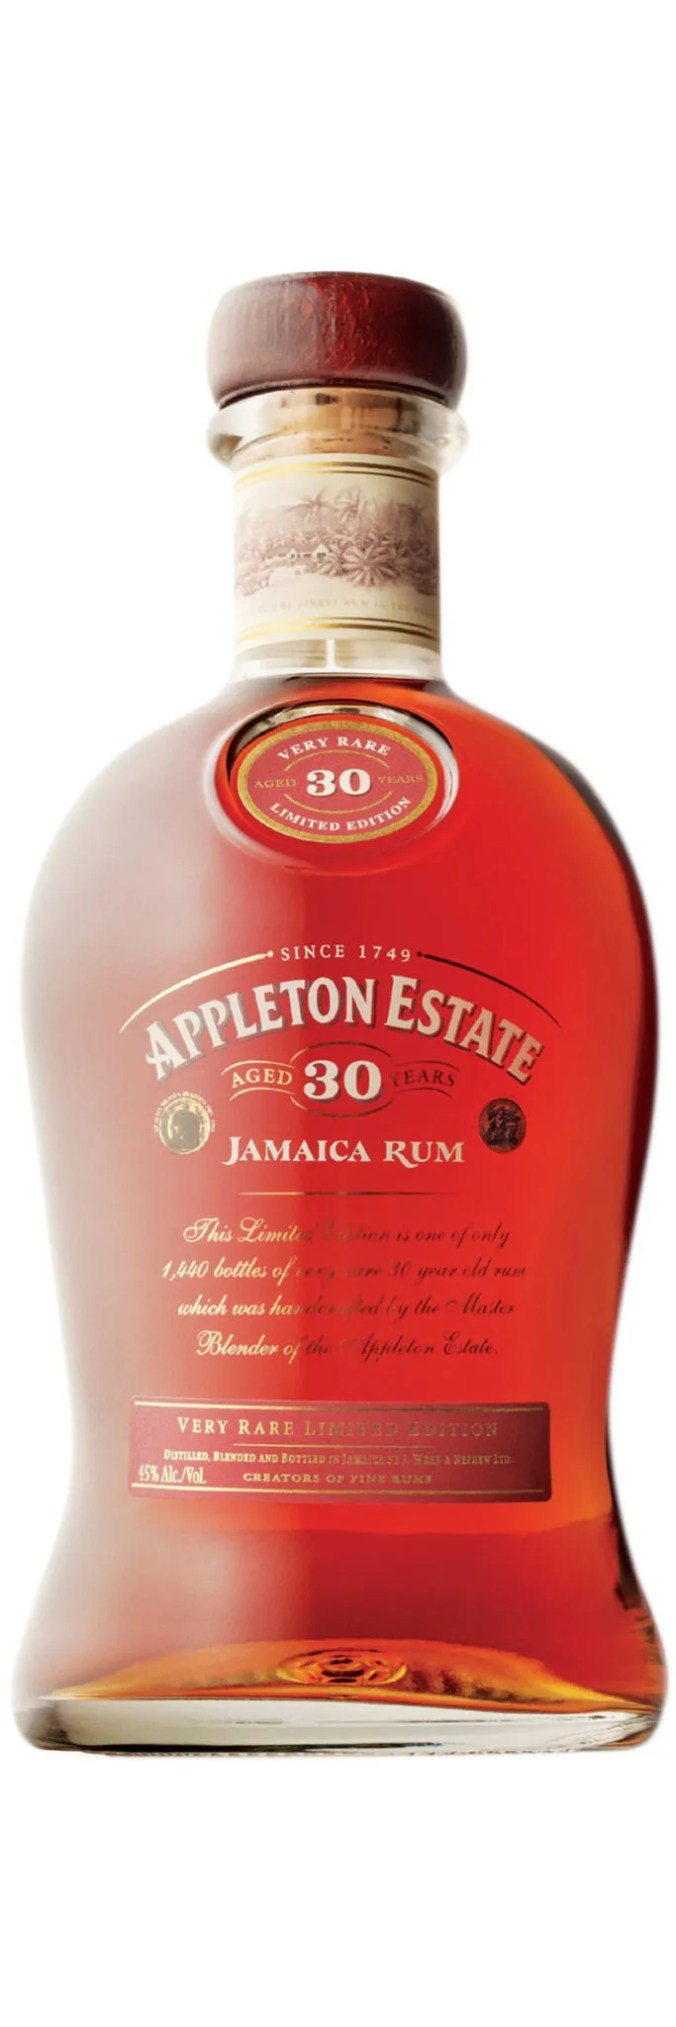 Appleton Estate 30 year old very rare limited edition aged rum from Jamaica, bottled at 45% abv.